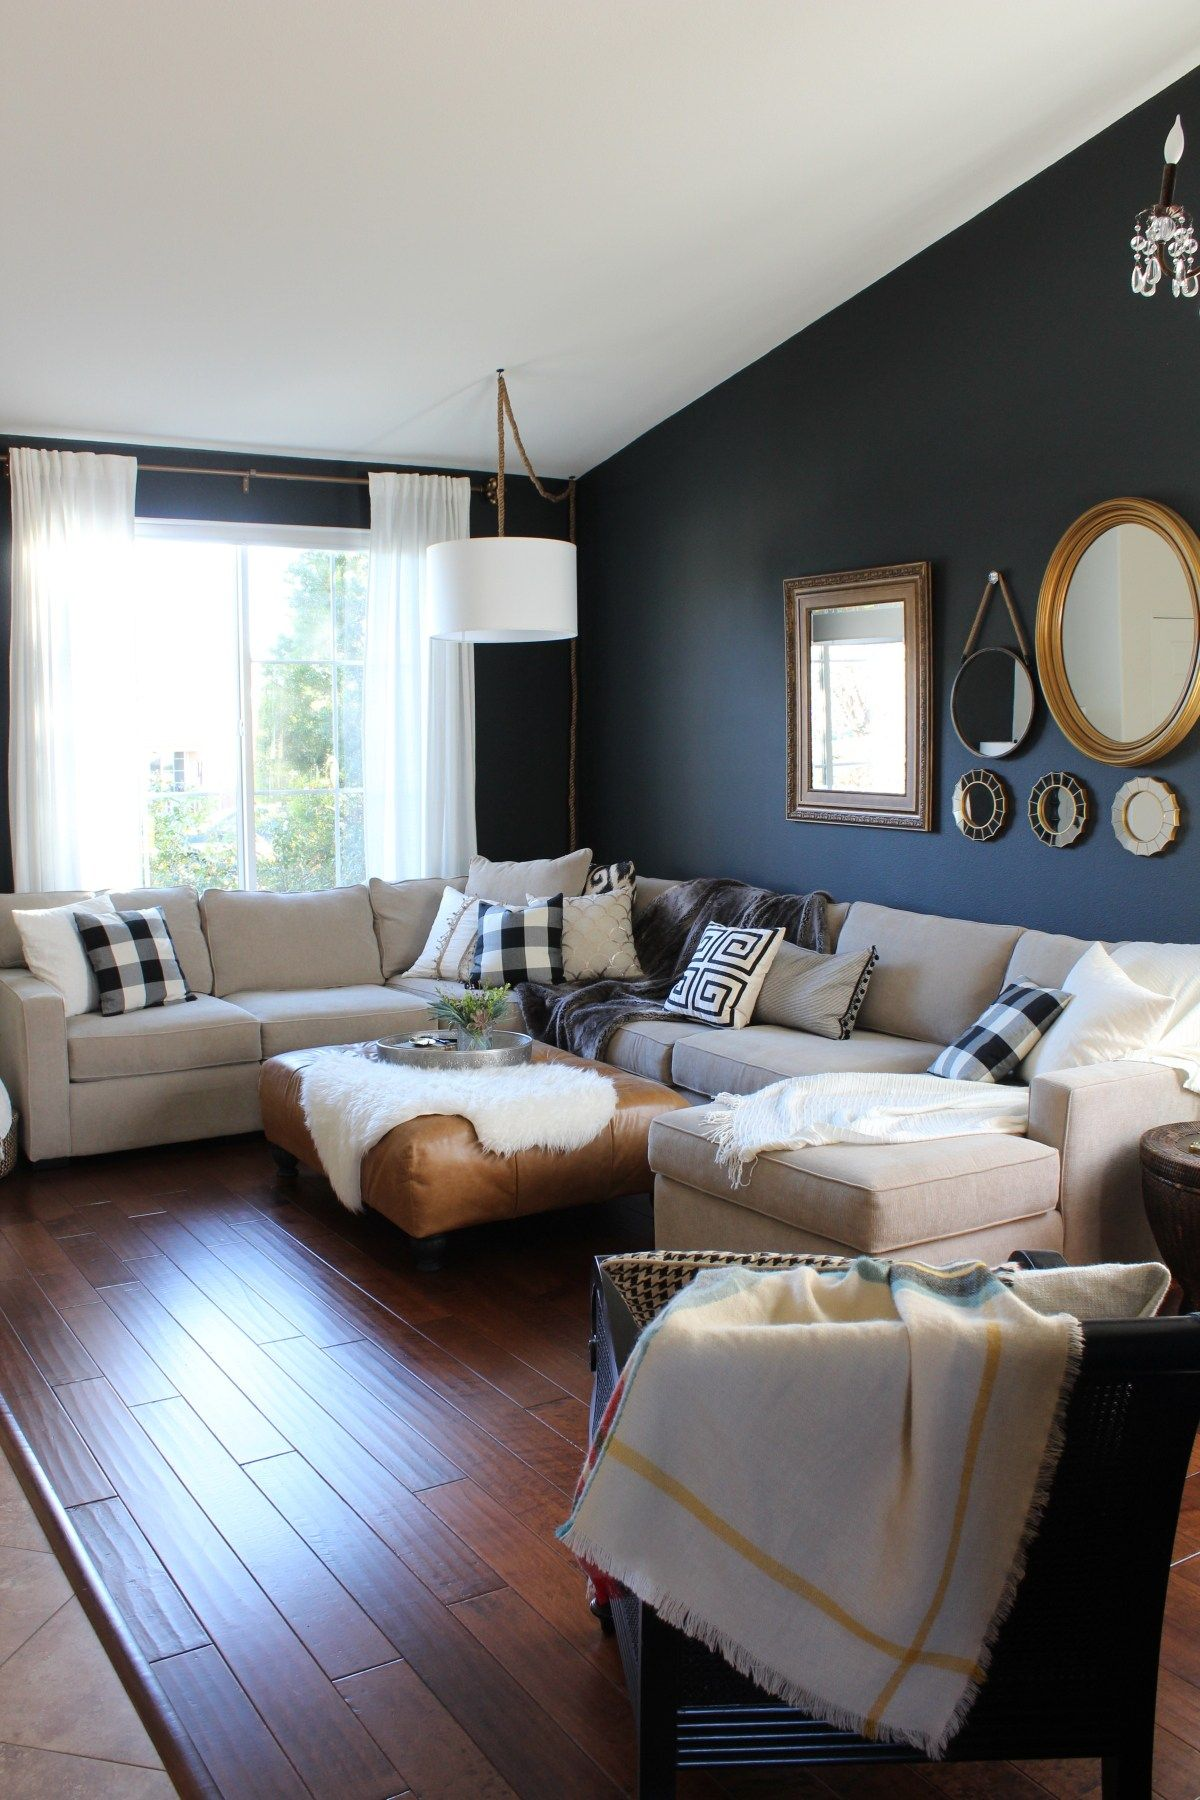 Should  choose  sectional or sofa will regret buying all good questions and can   wait to answer them but first have tell you also gorgeous formal living room decor ideas home pinterest rh